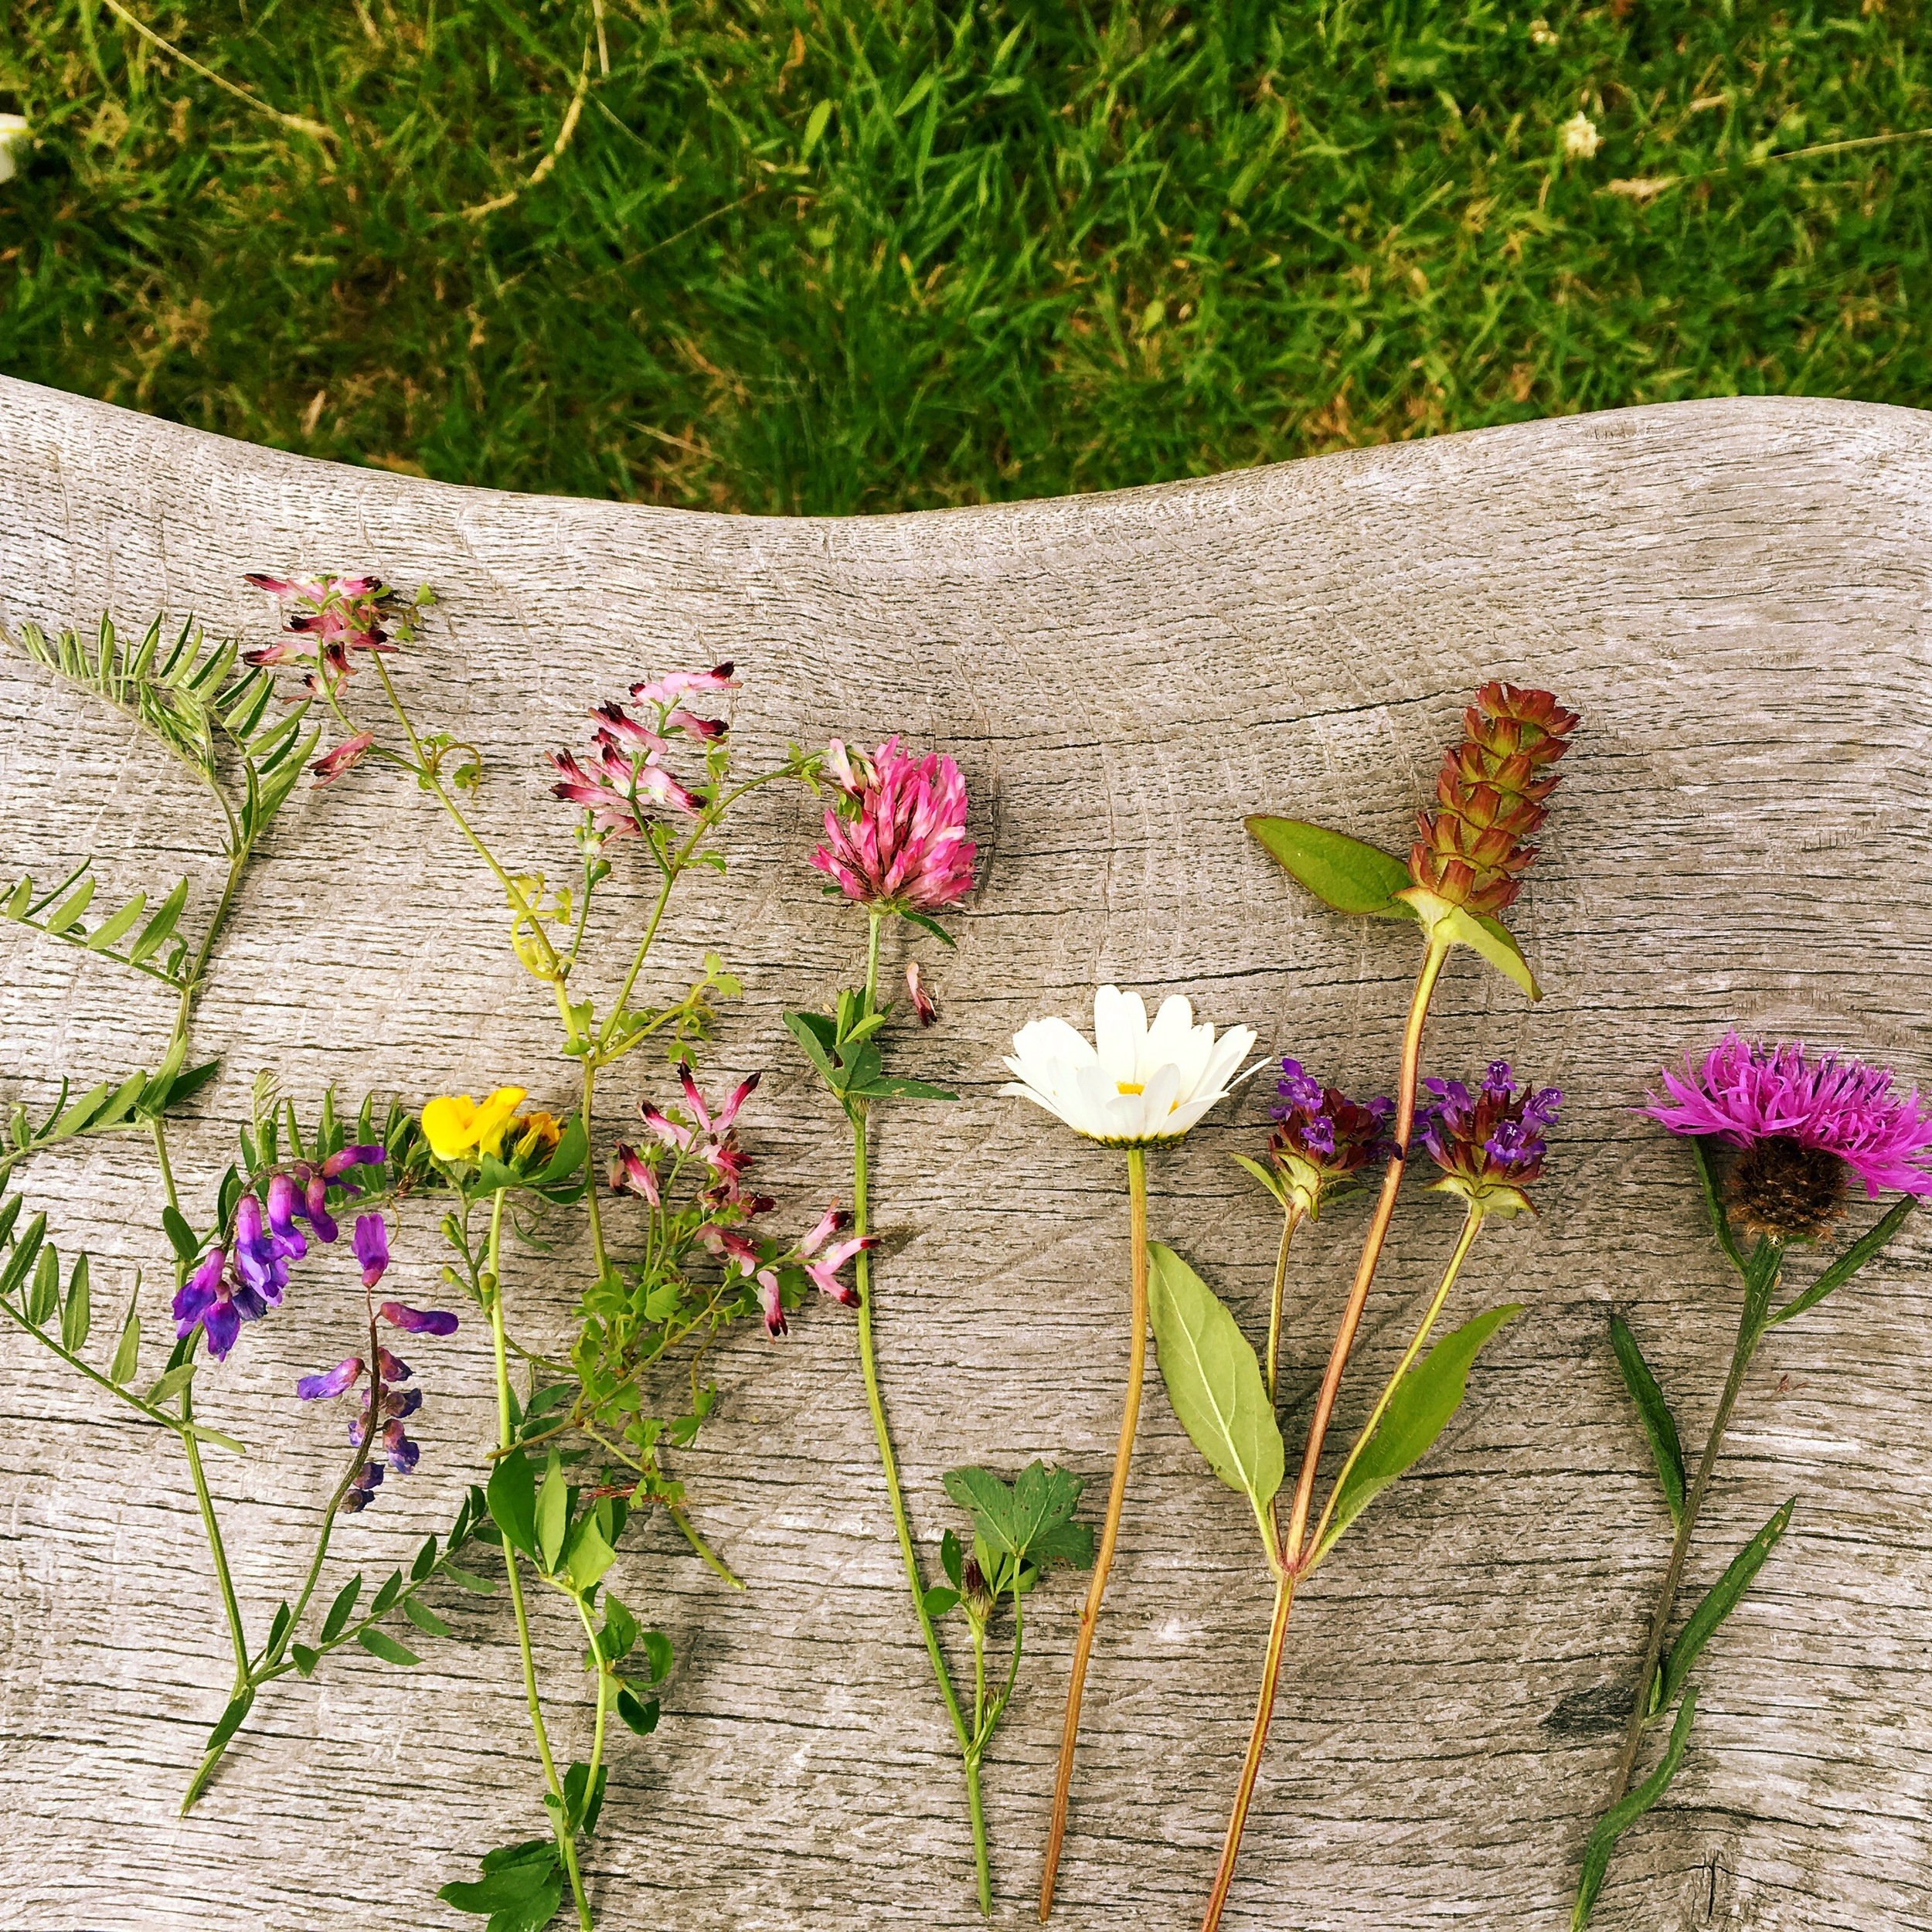 six species of wildflowers lying on the outside table